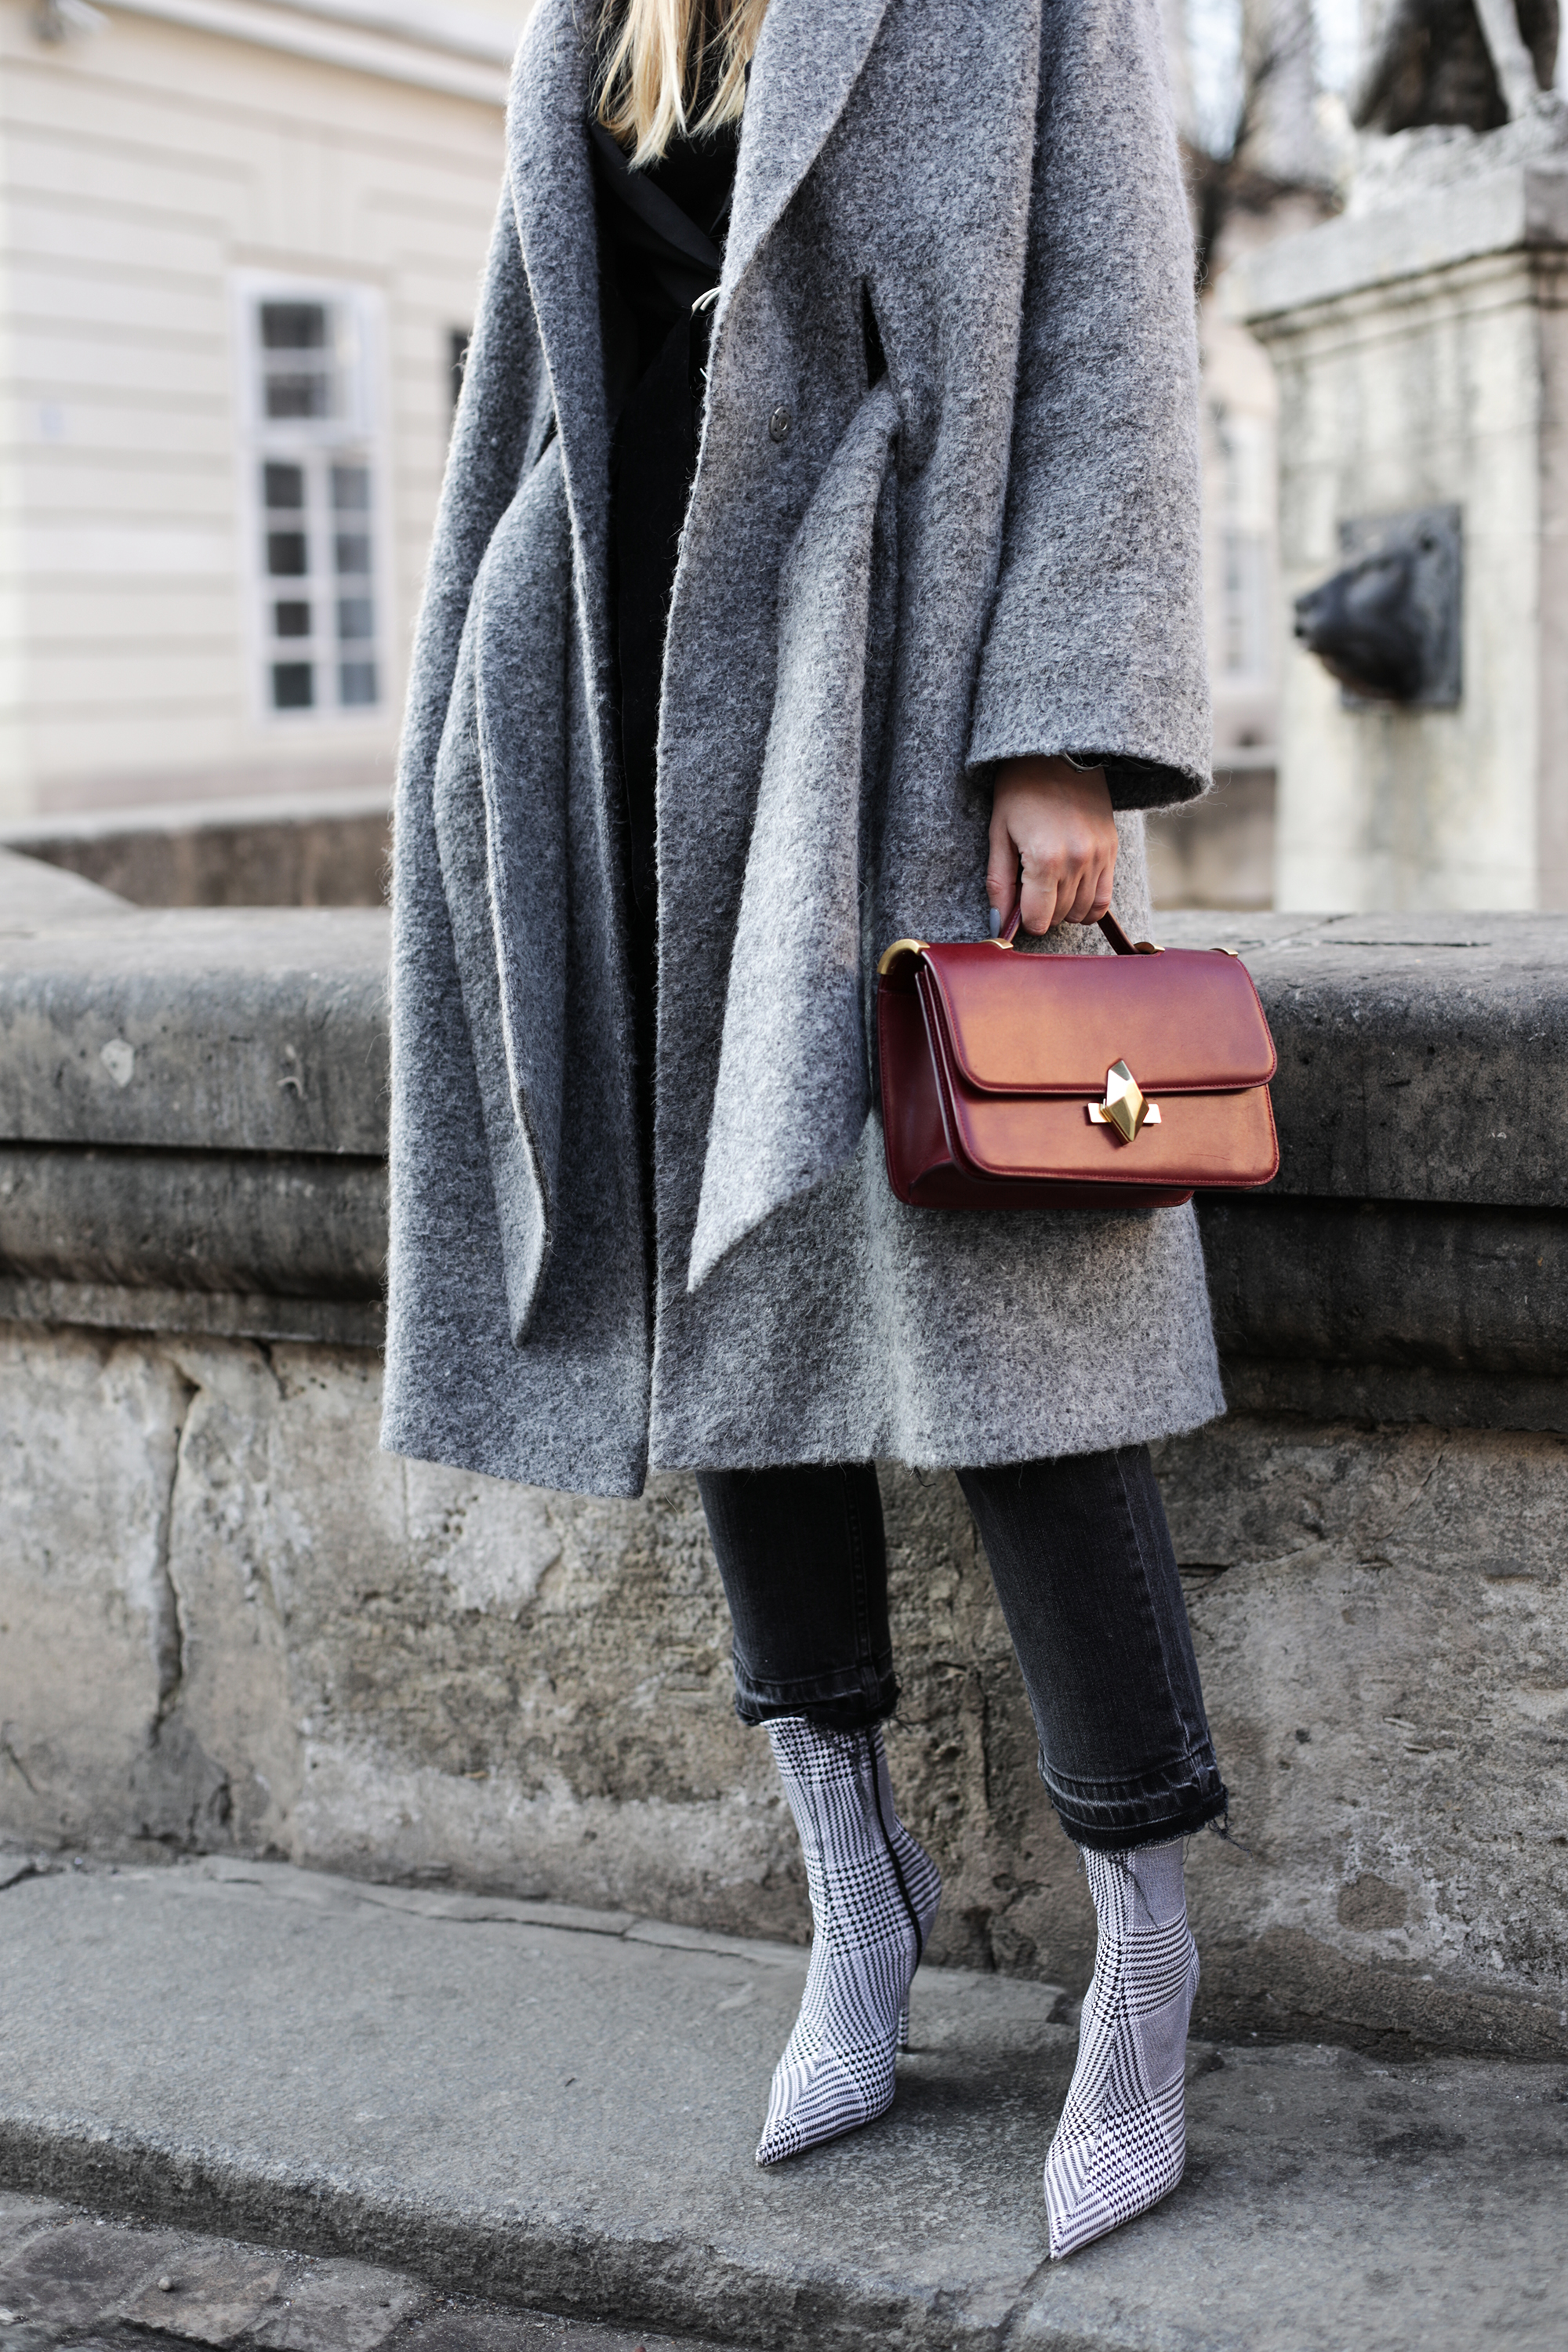 ocersized-grey-coat-outfit-street-style